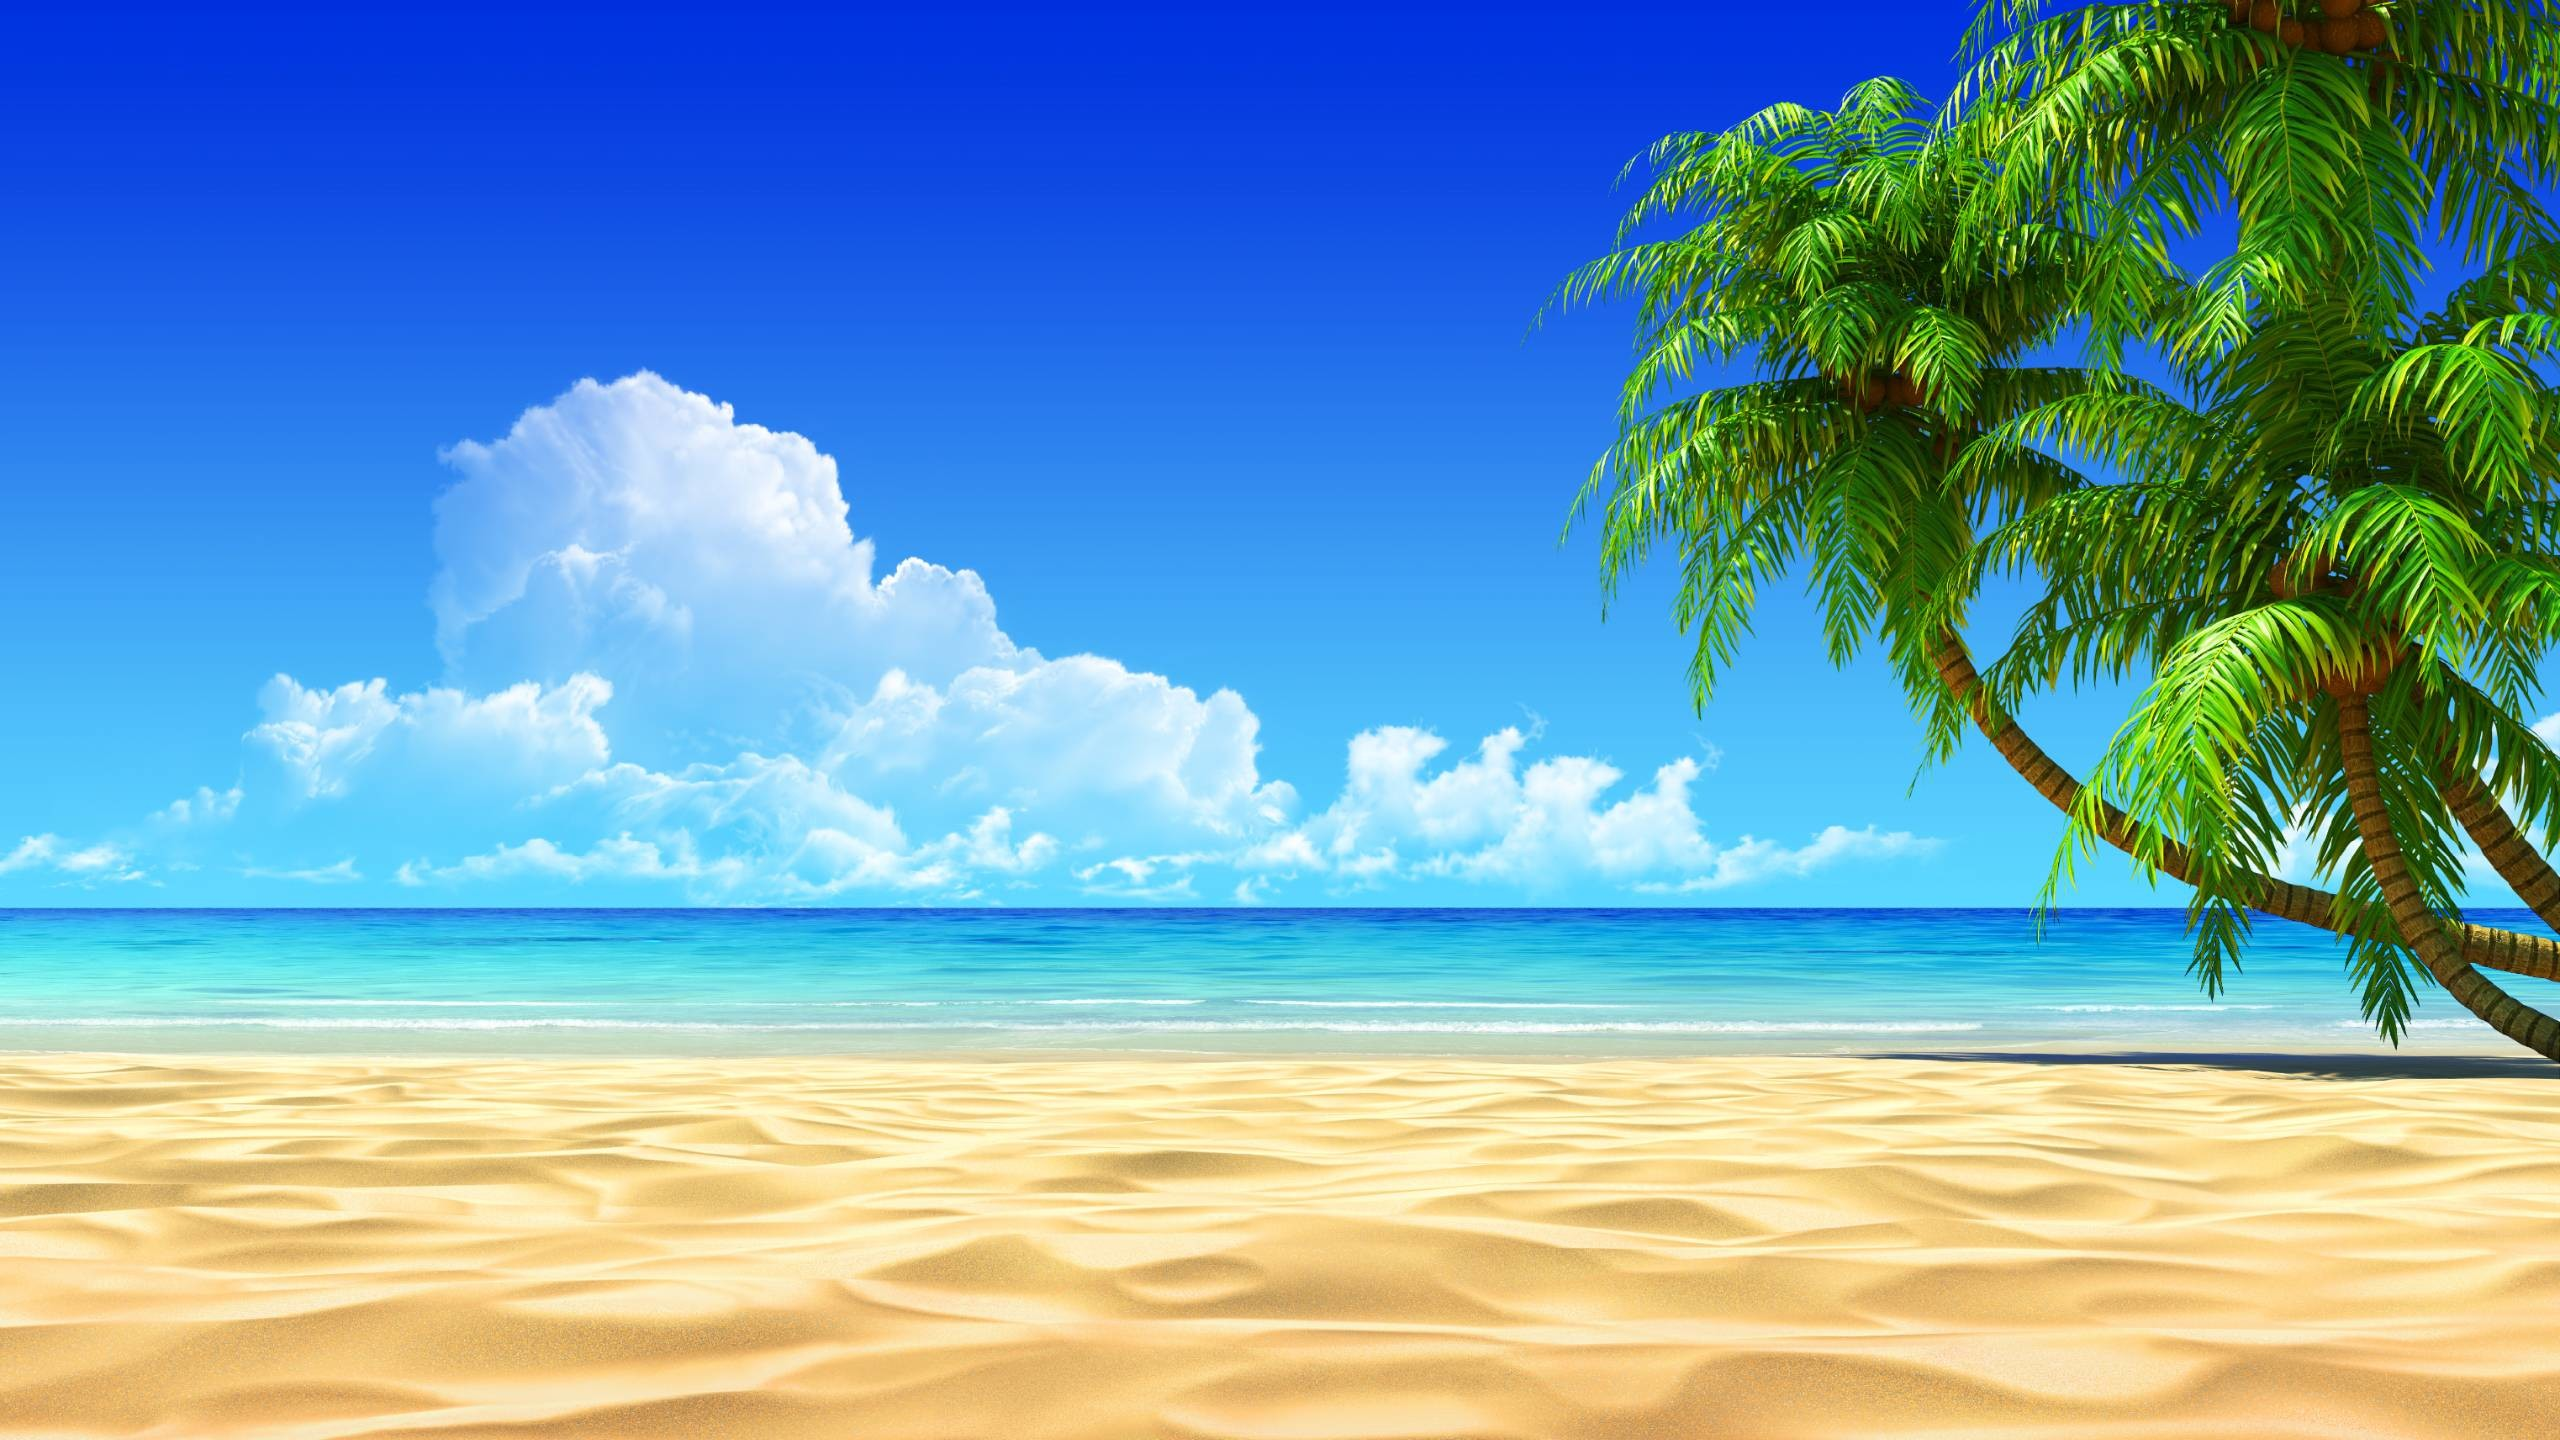 2560x1440 HD Tropical Wallpapers Tropical Best Pictures Collection